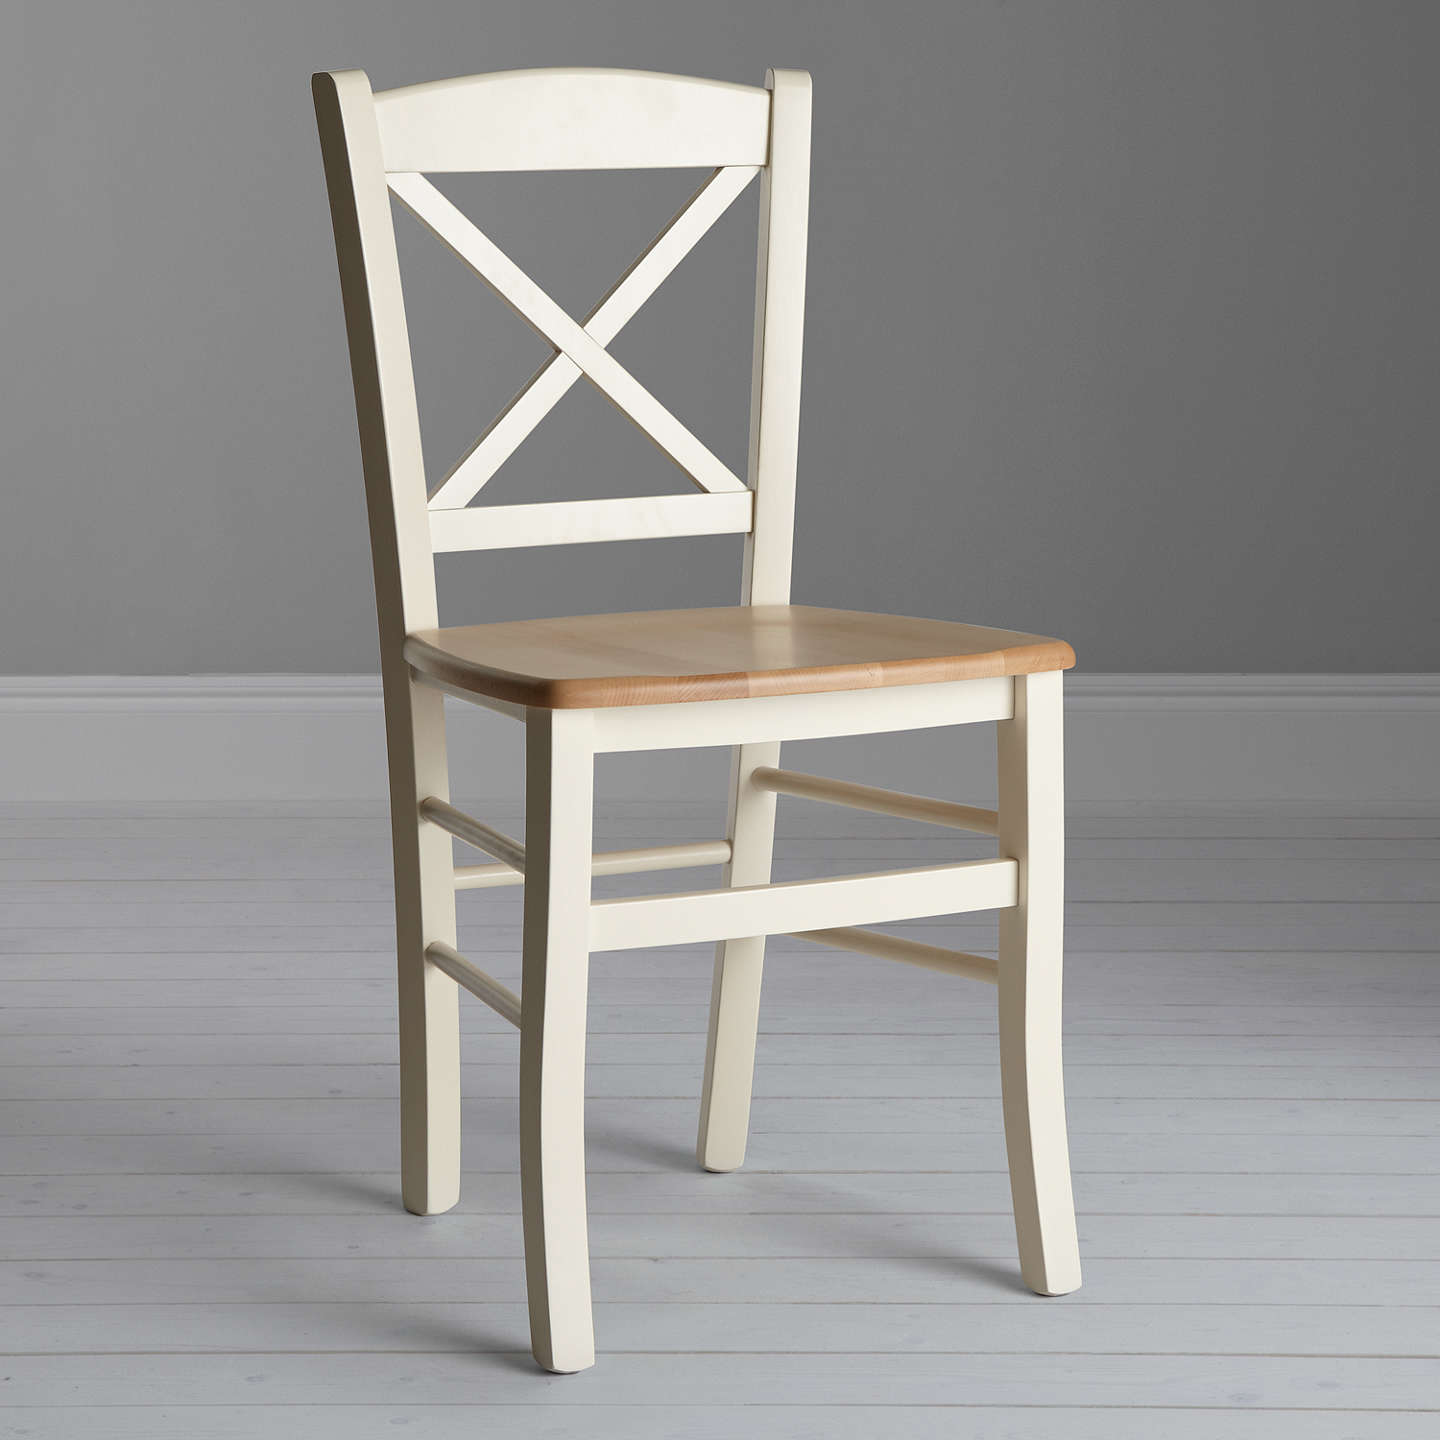 Kitchen Table And Chairs Homebase: John Lewis Clayton Dining Chair, Cream At John Lewis